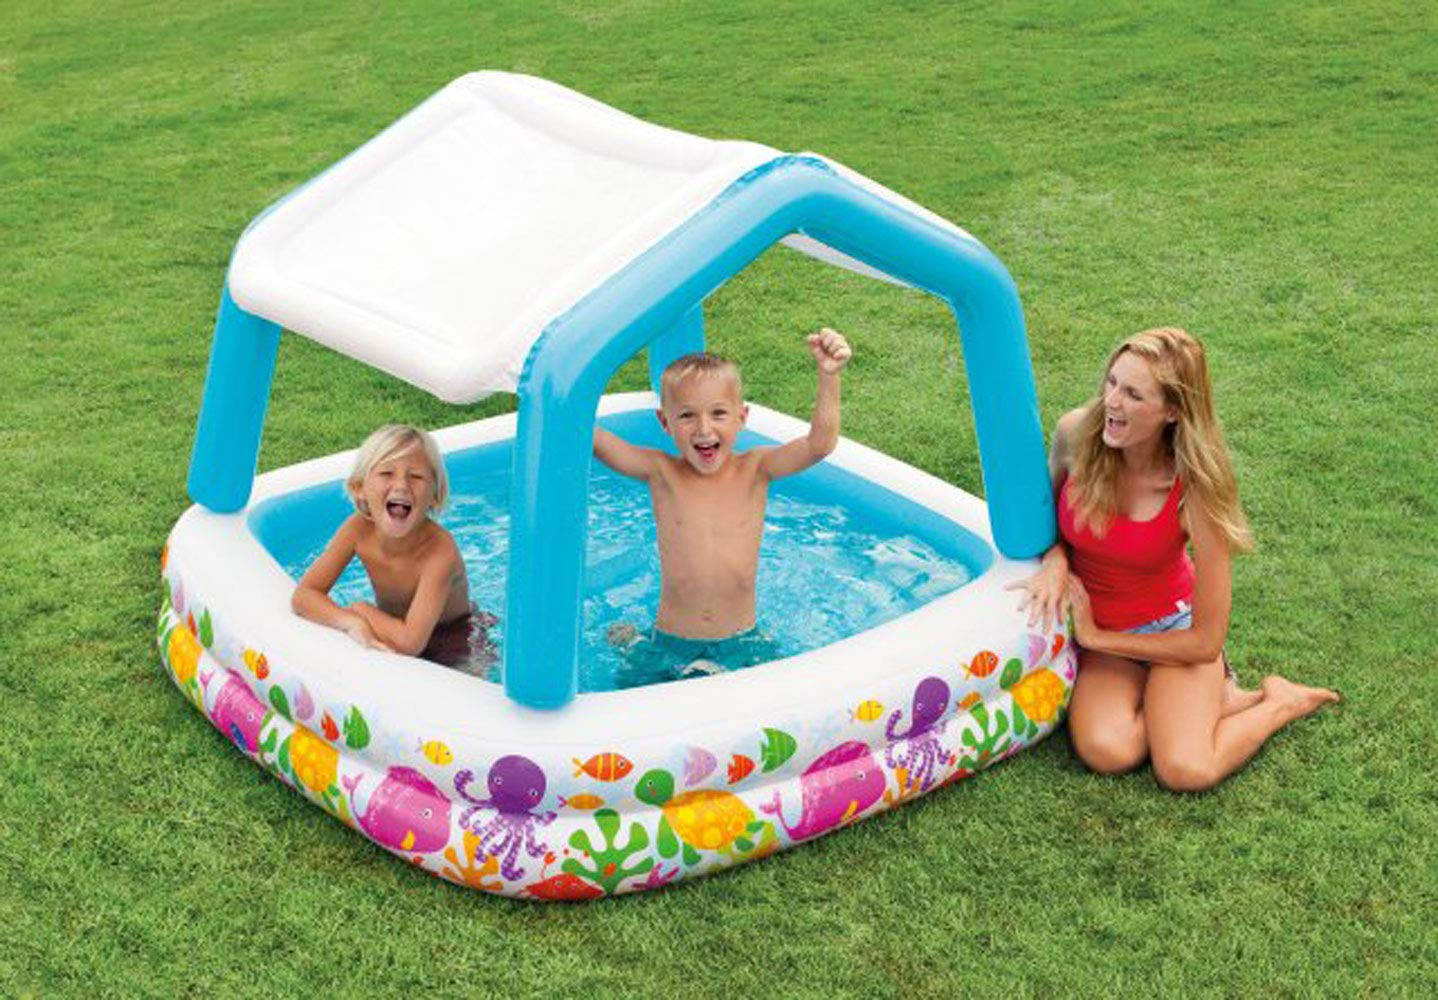 INTEX Sun & Shade Inflatable Kids Swimming Pool w/ Canopy + Quick Fill Pump by Intex